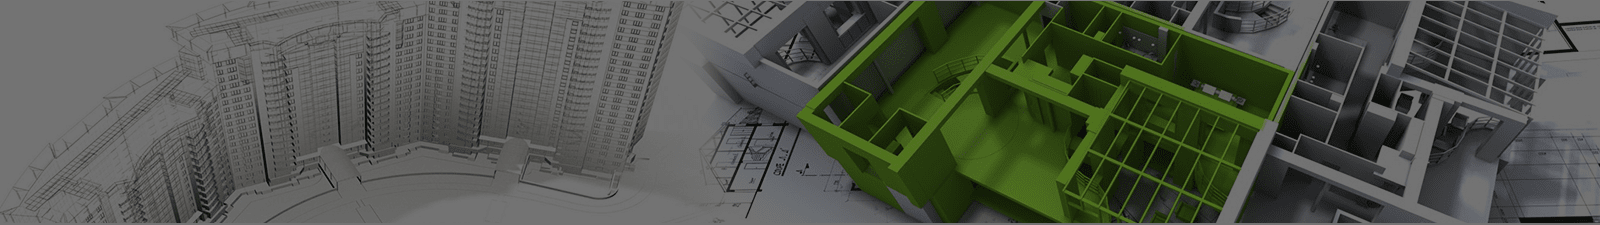 building information modeling services Greenville